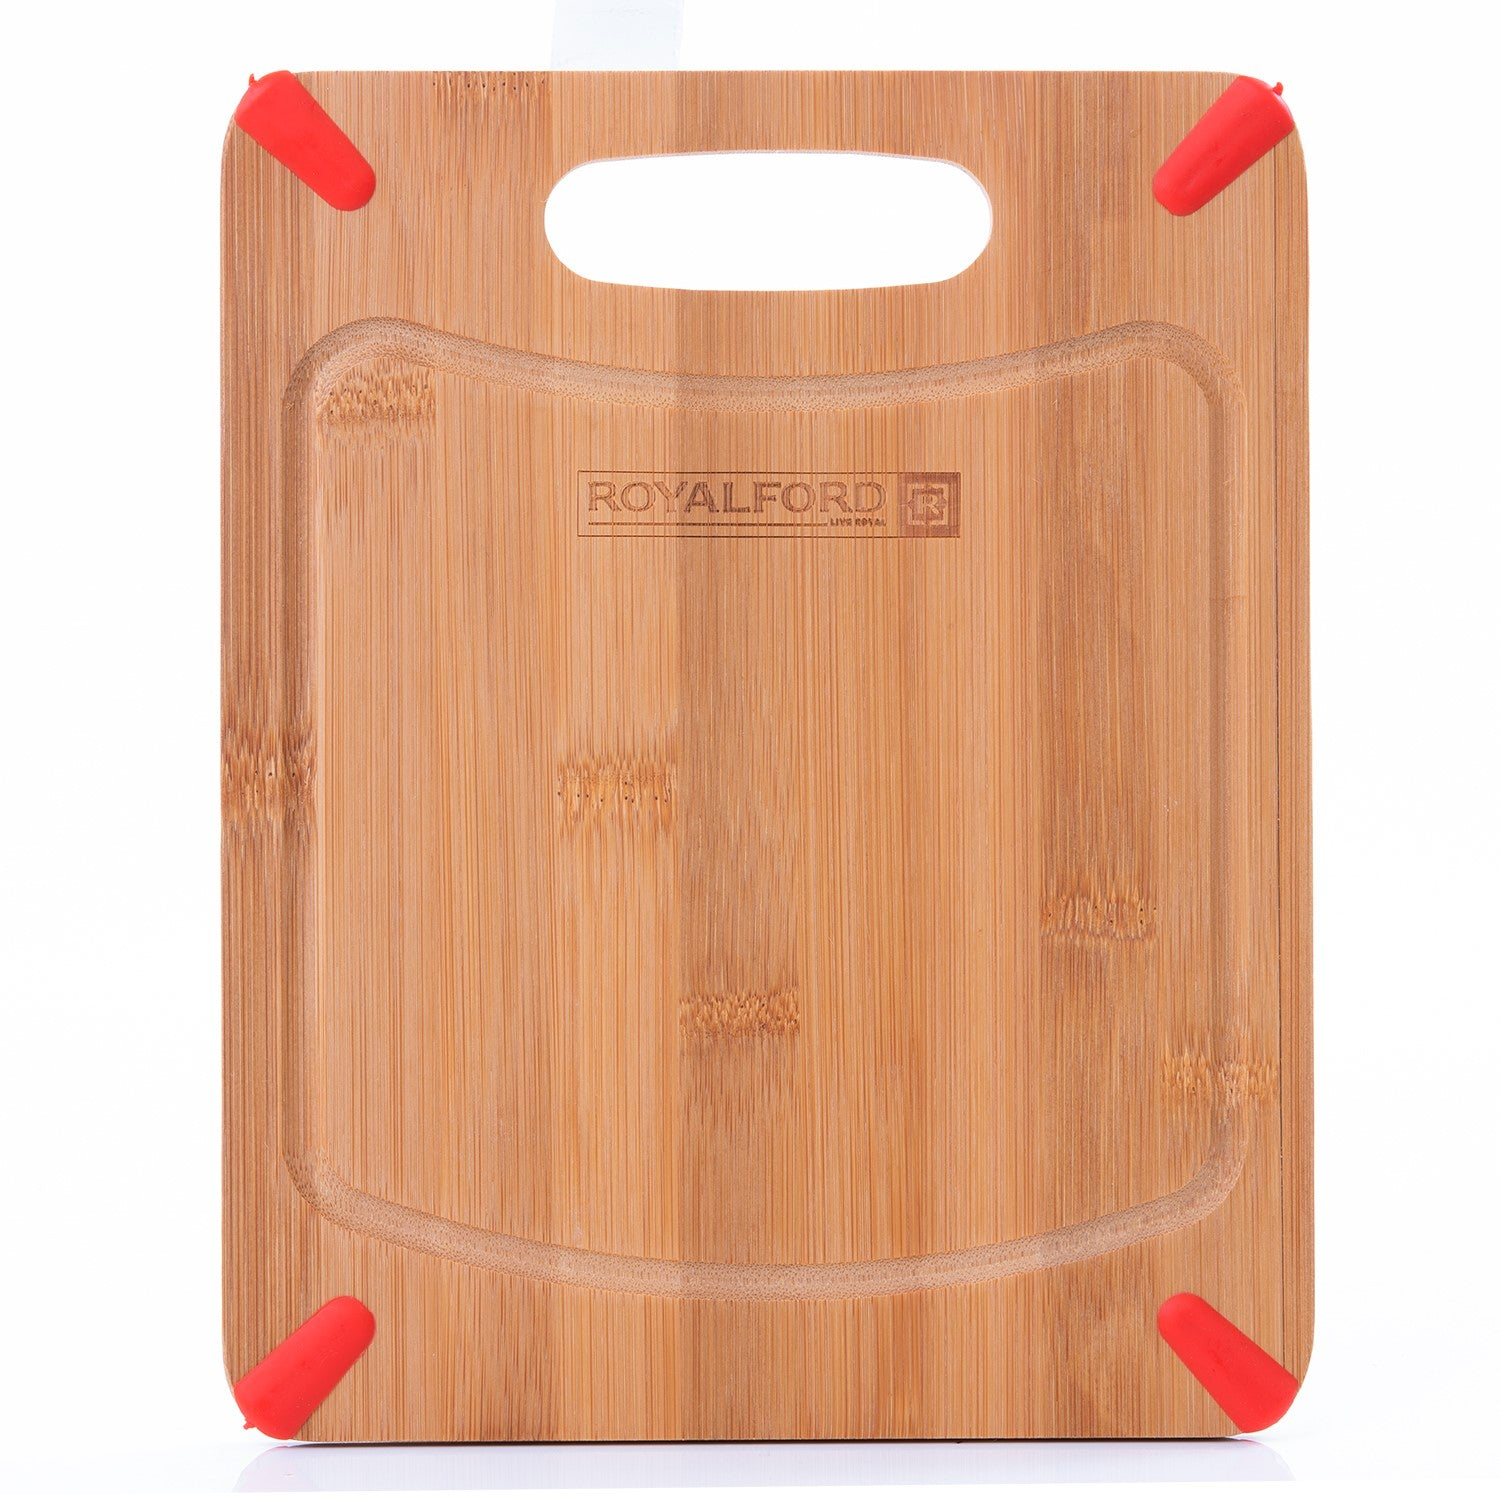 Royalford RF8685 Carbonized Organic Bamboo Cutting Board, 25x20x0.8 CM | Large Kitchen Cutting Board - Best for Food Prep, Meat, Vegetables, Bread & Cheese - Professional Grade for Strength, Durability & Lightweight